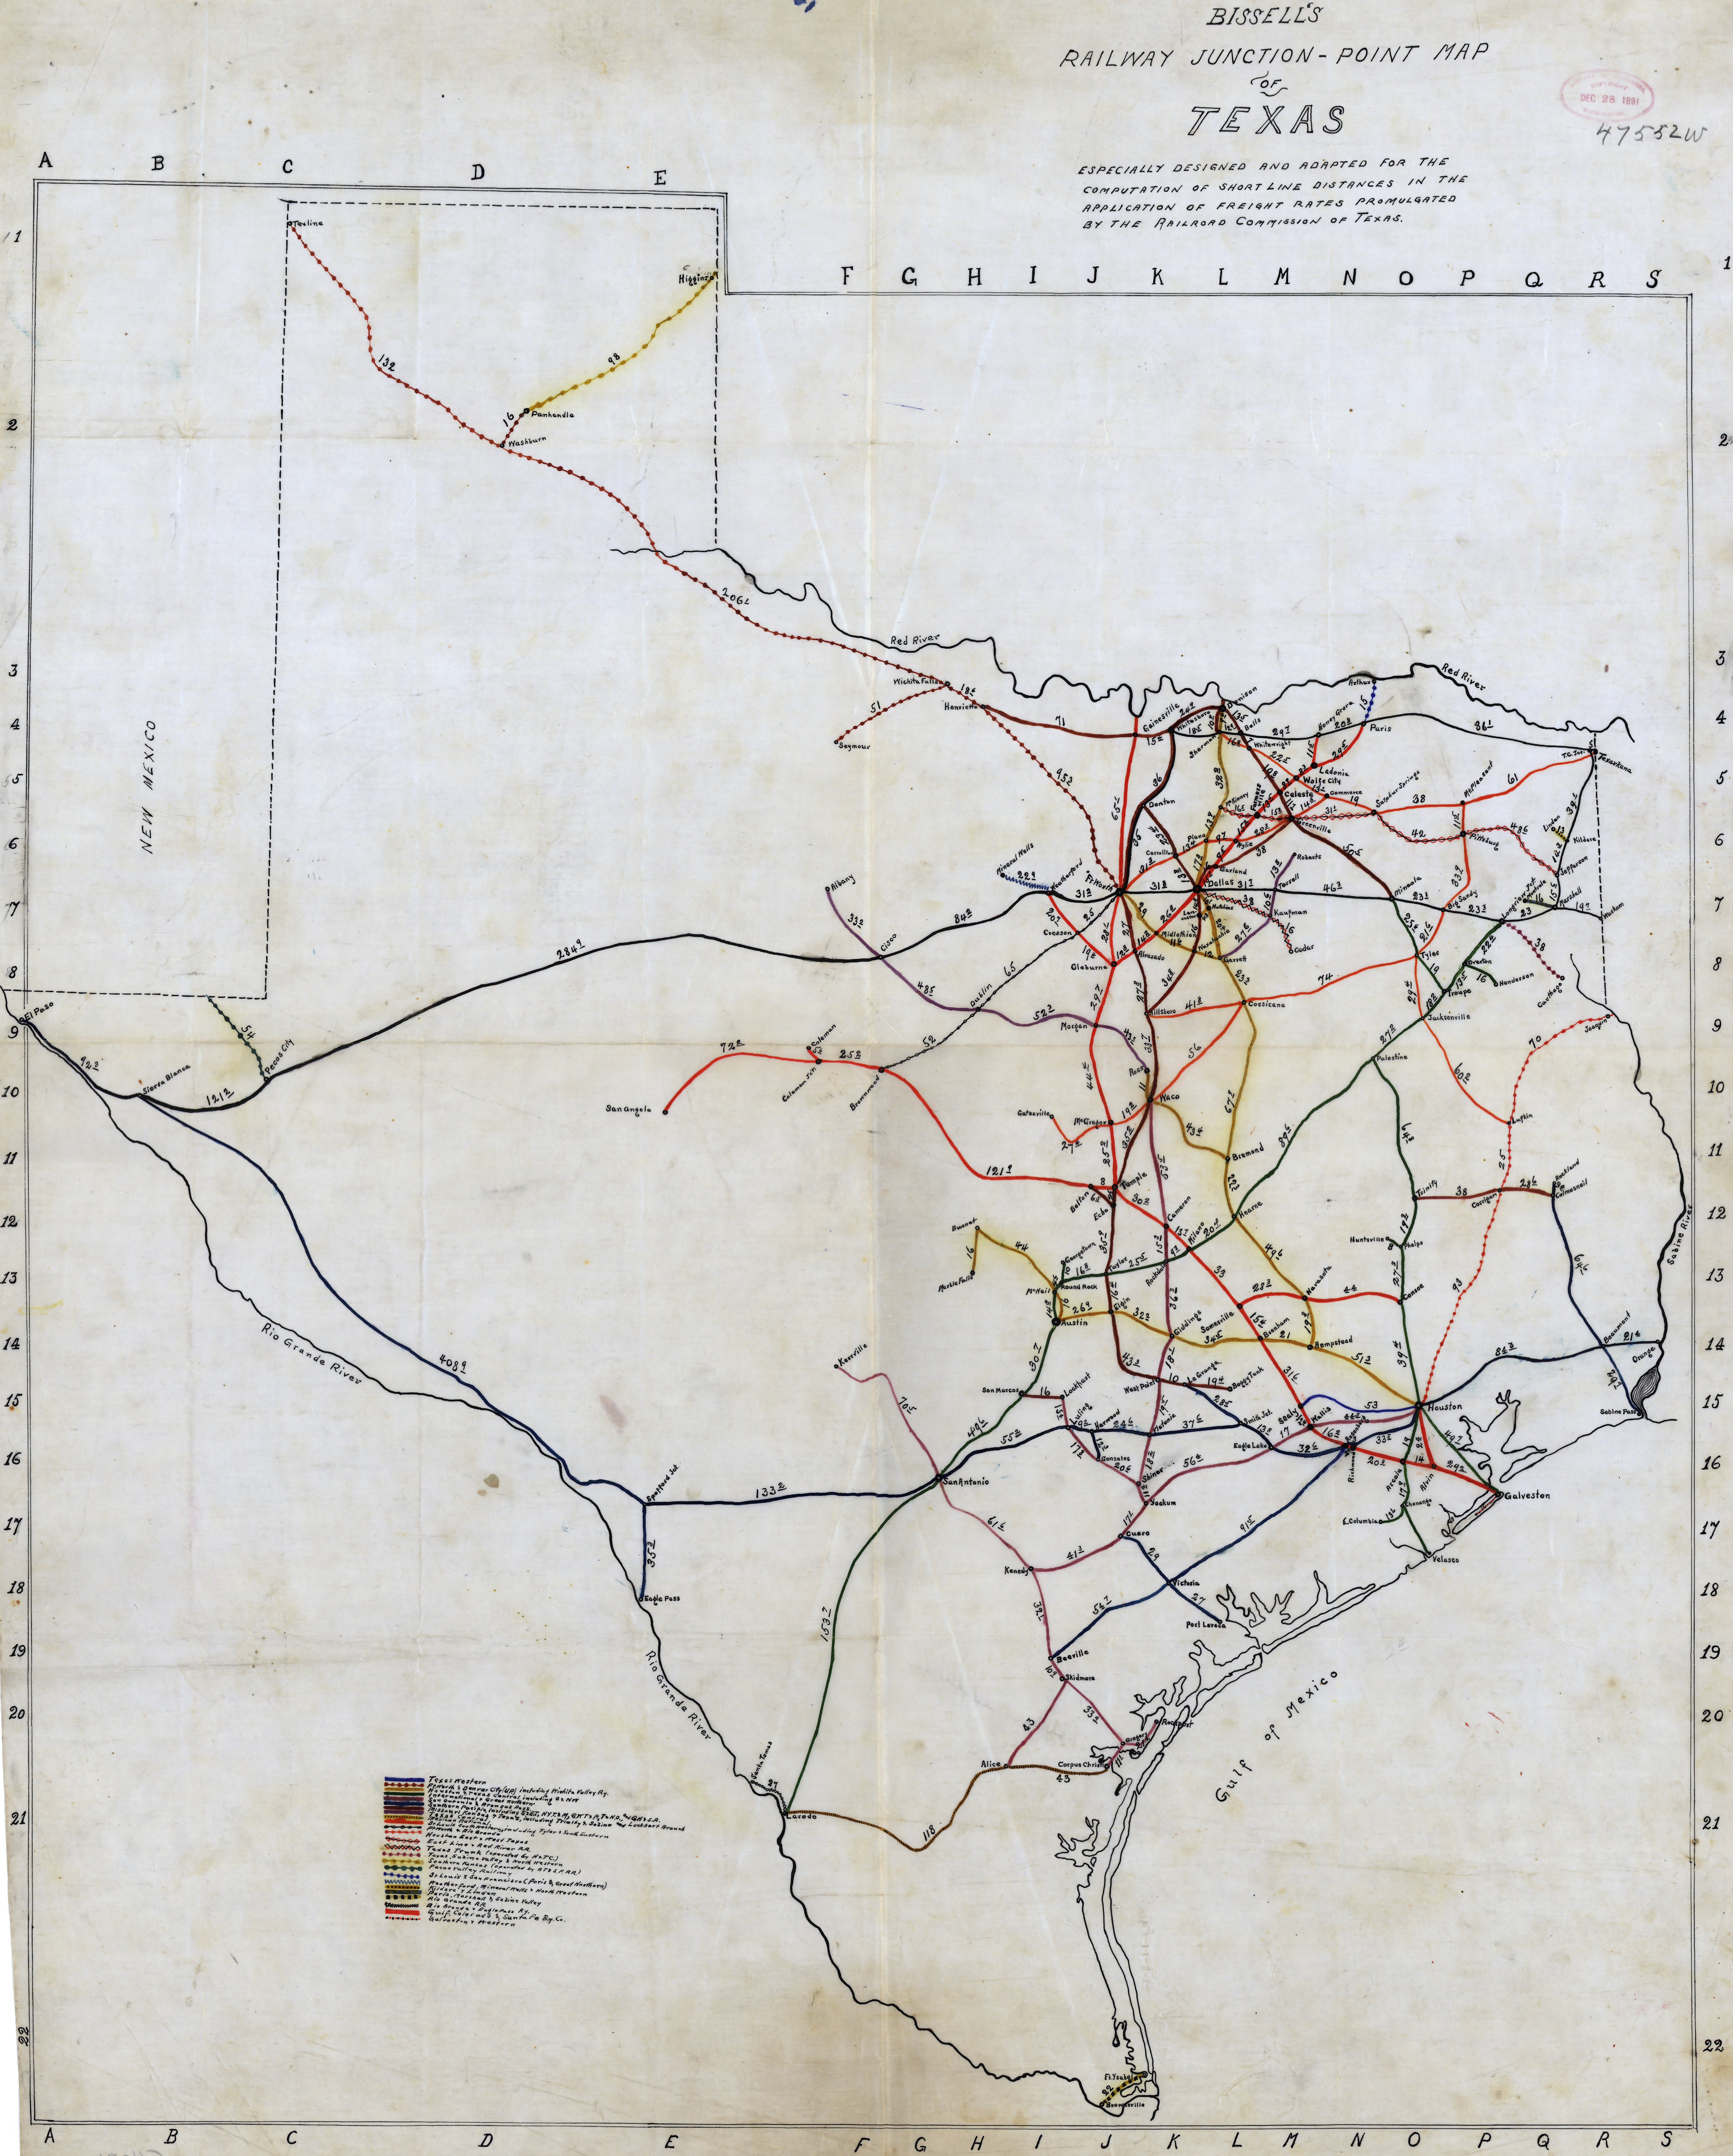 Map Of Texas Railroads.Bissell S Railway Junction Map Of Texas 1891